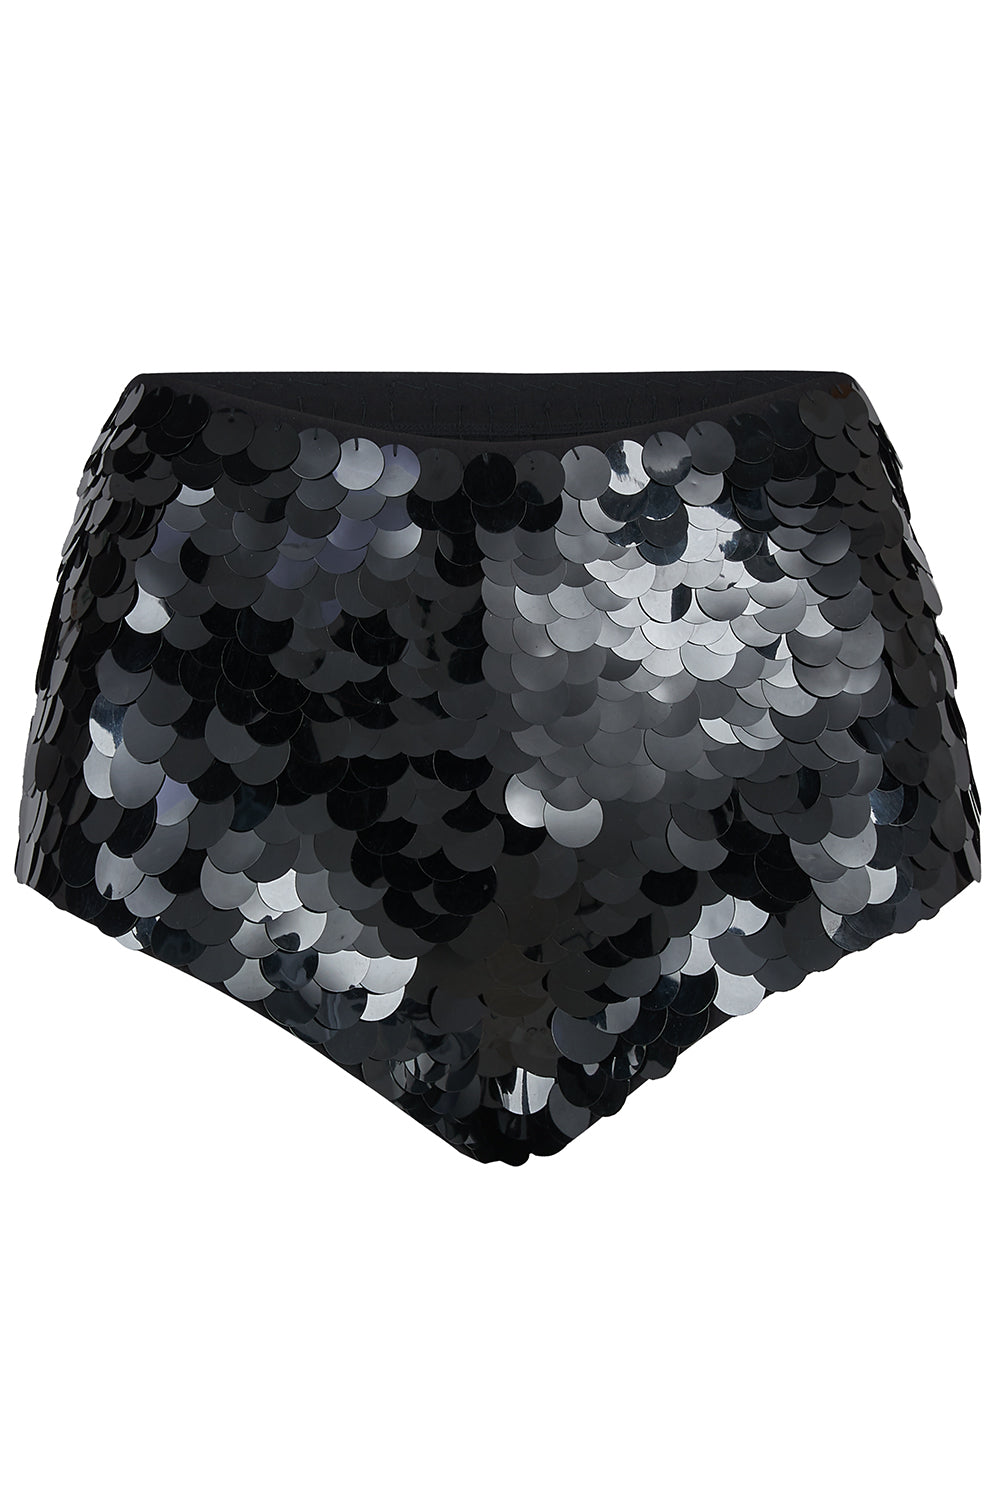 GIGI SEQUIN HOTPANTS - BLACK